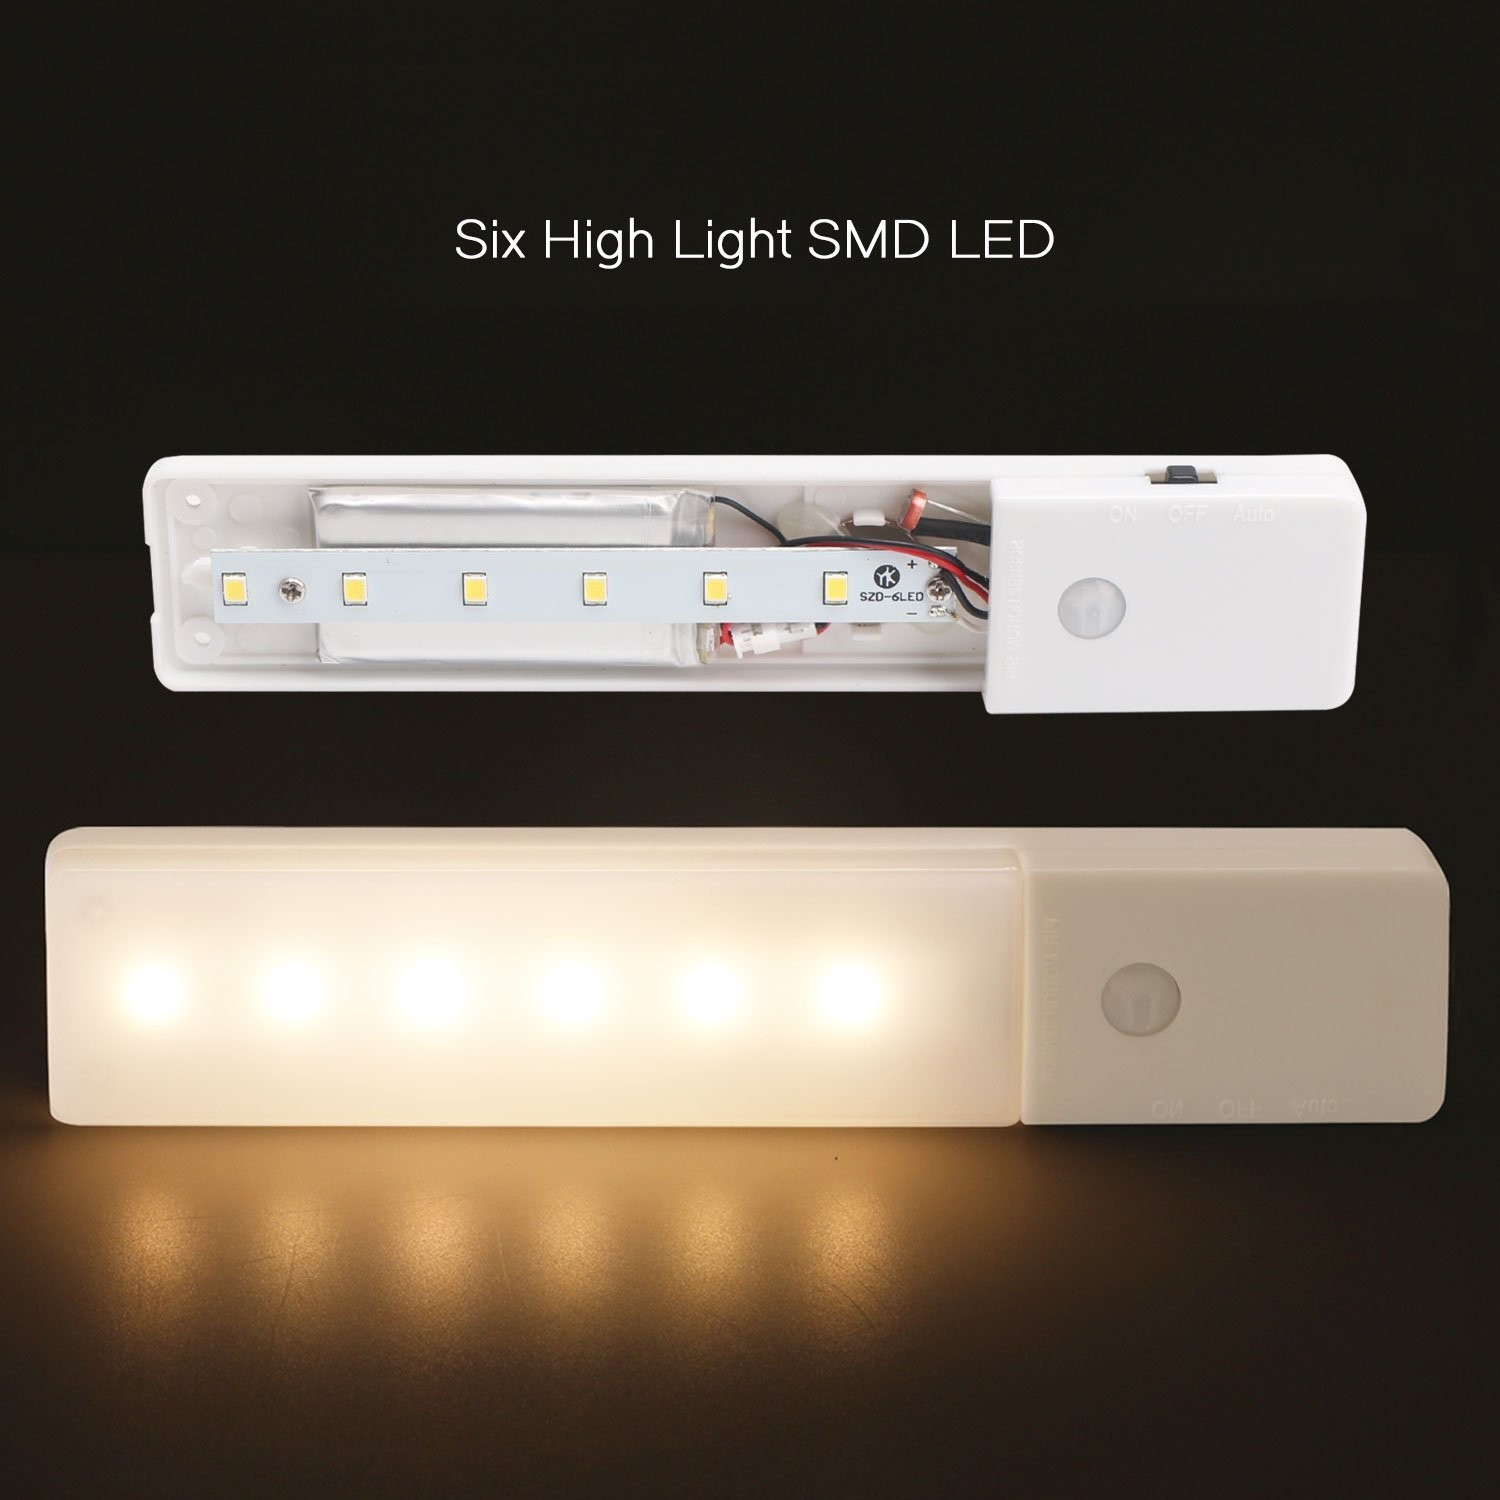 El608 Rechargeable Infrared Motion Sensor Wall Led Night